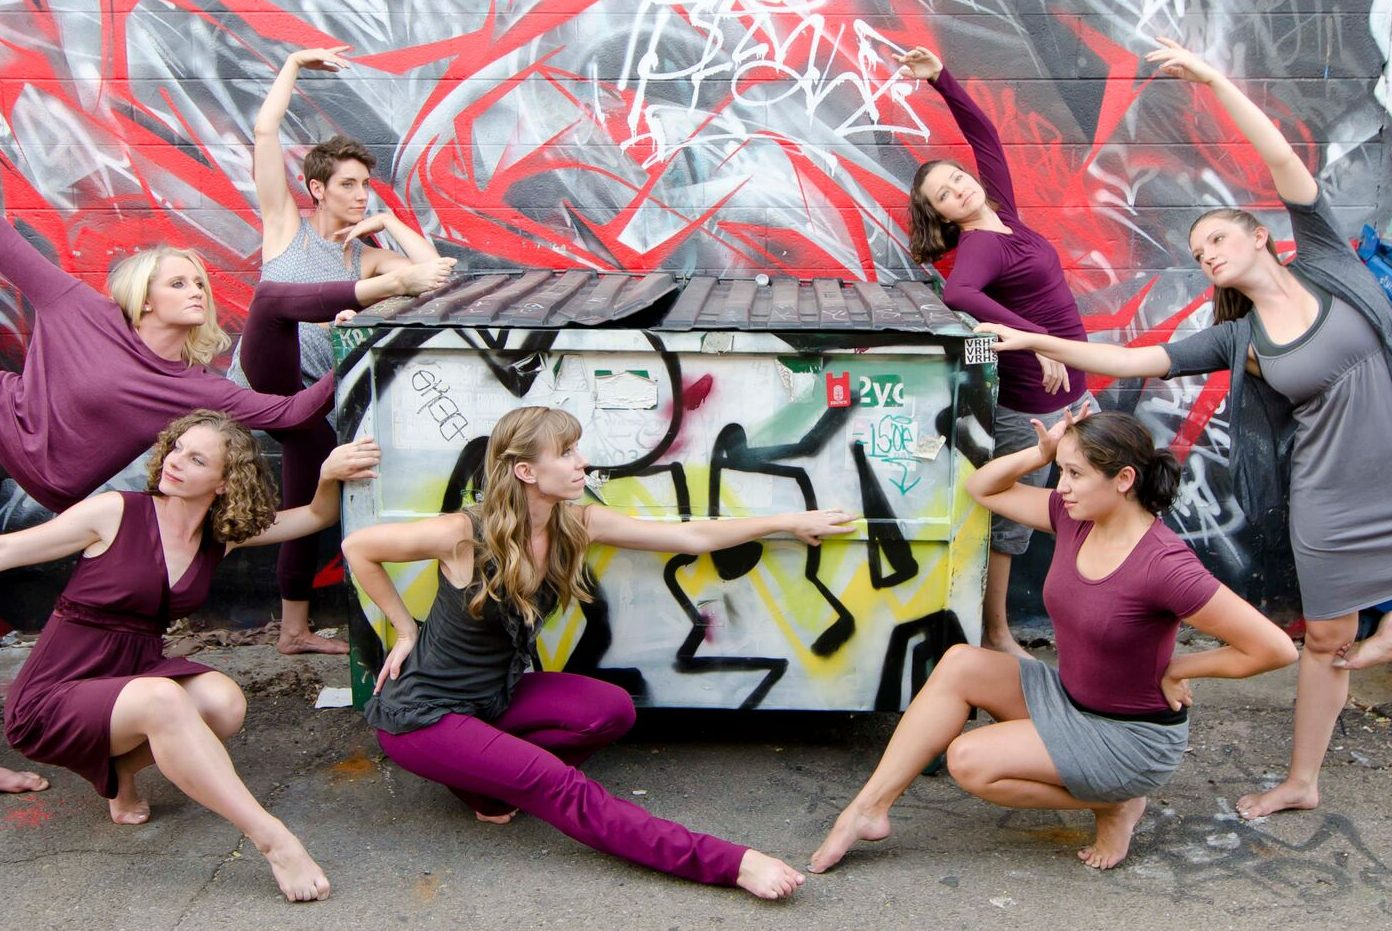 Photo by Adam Riggs. Image courtesy of Life|Art Dance Ensemble.